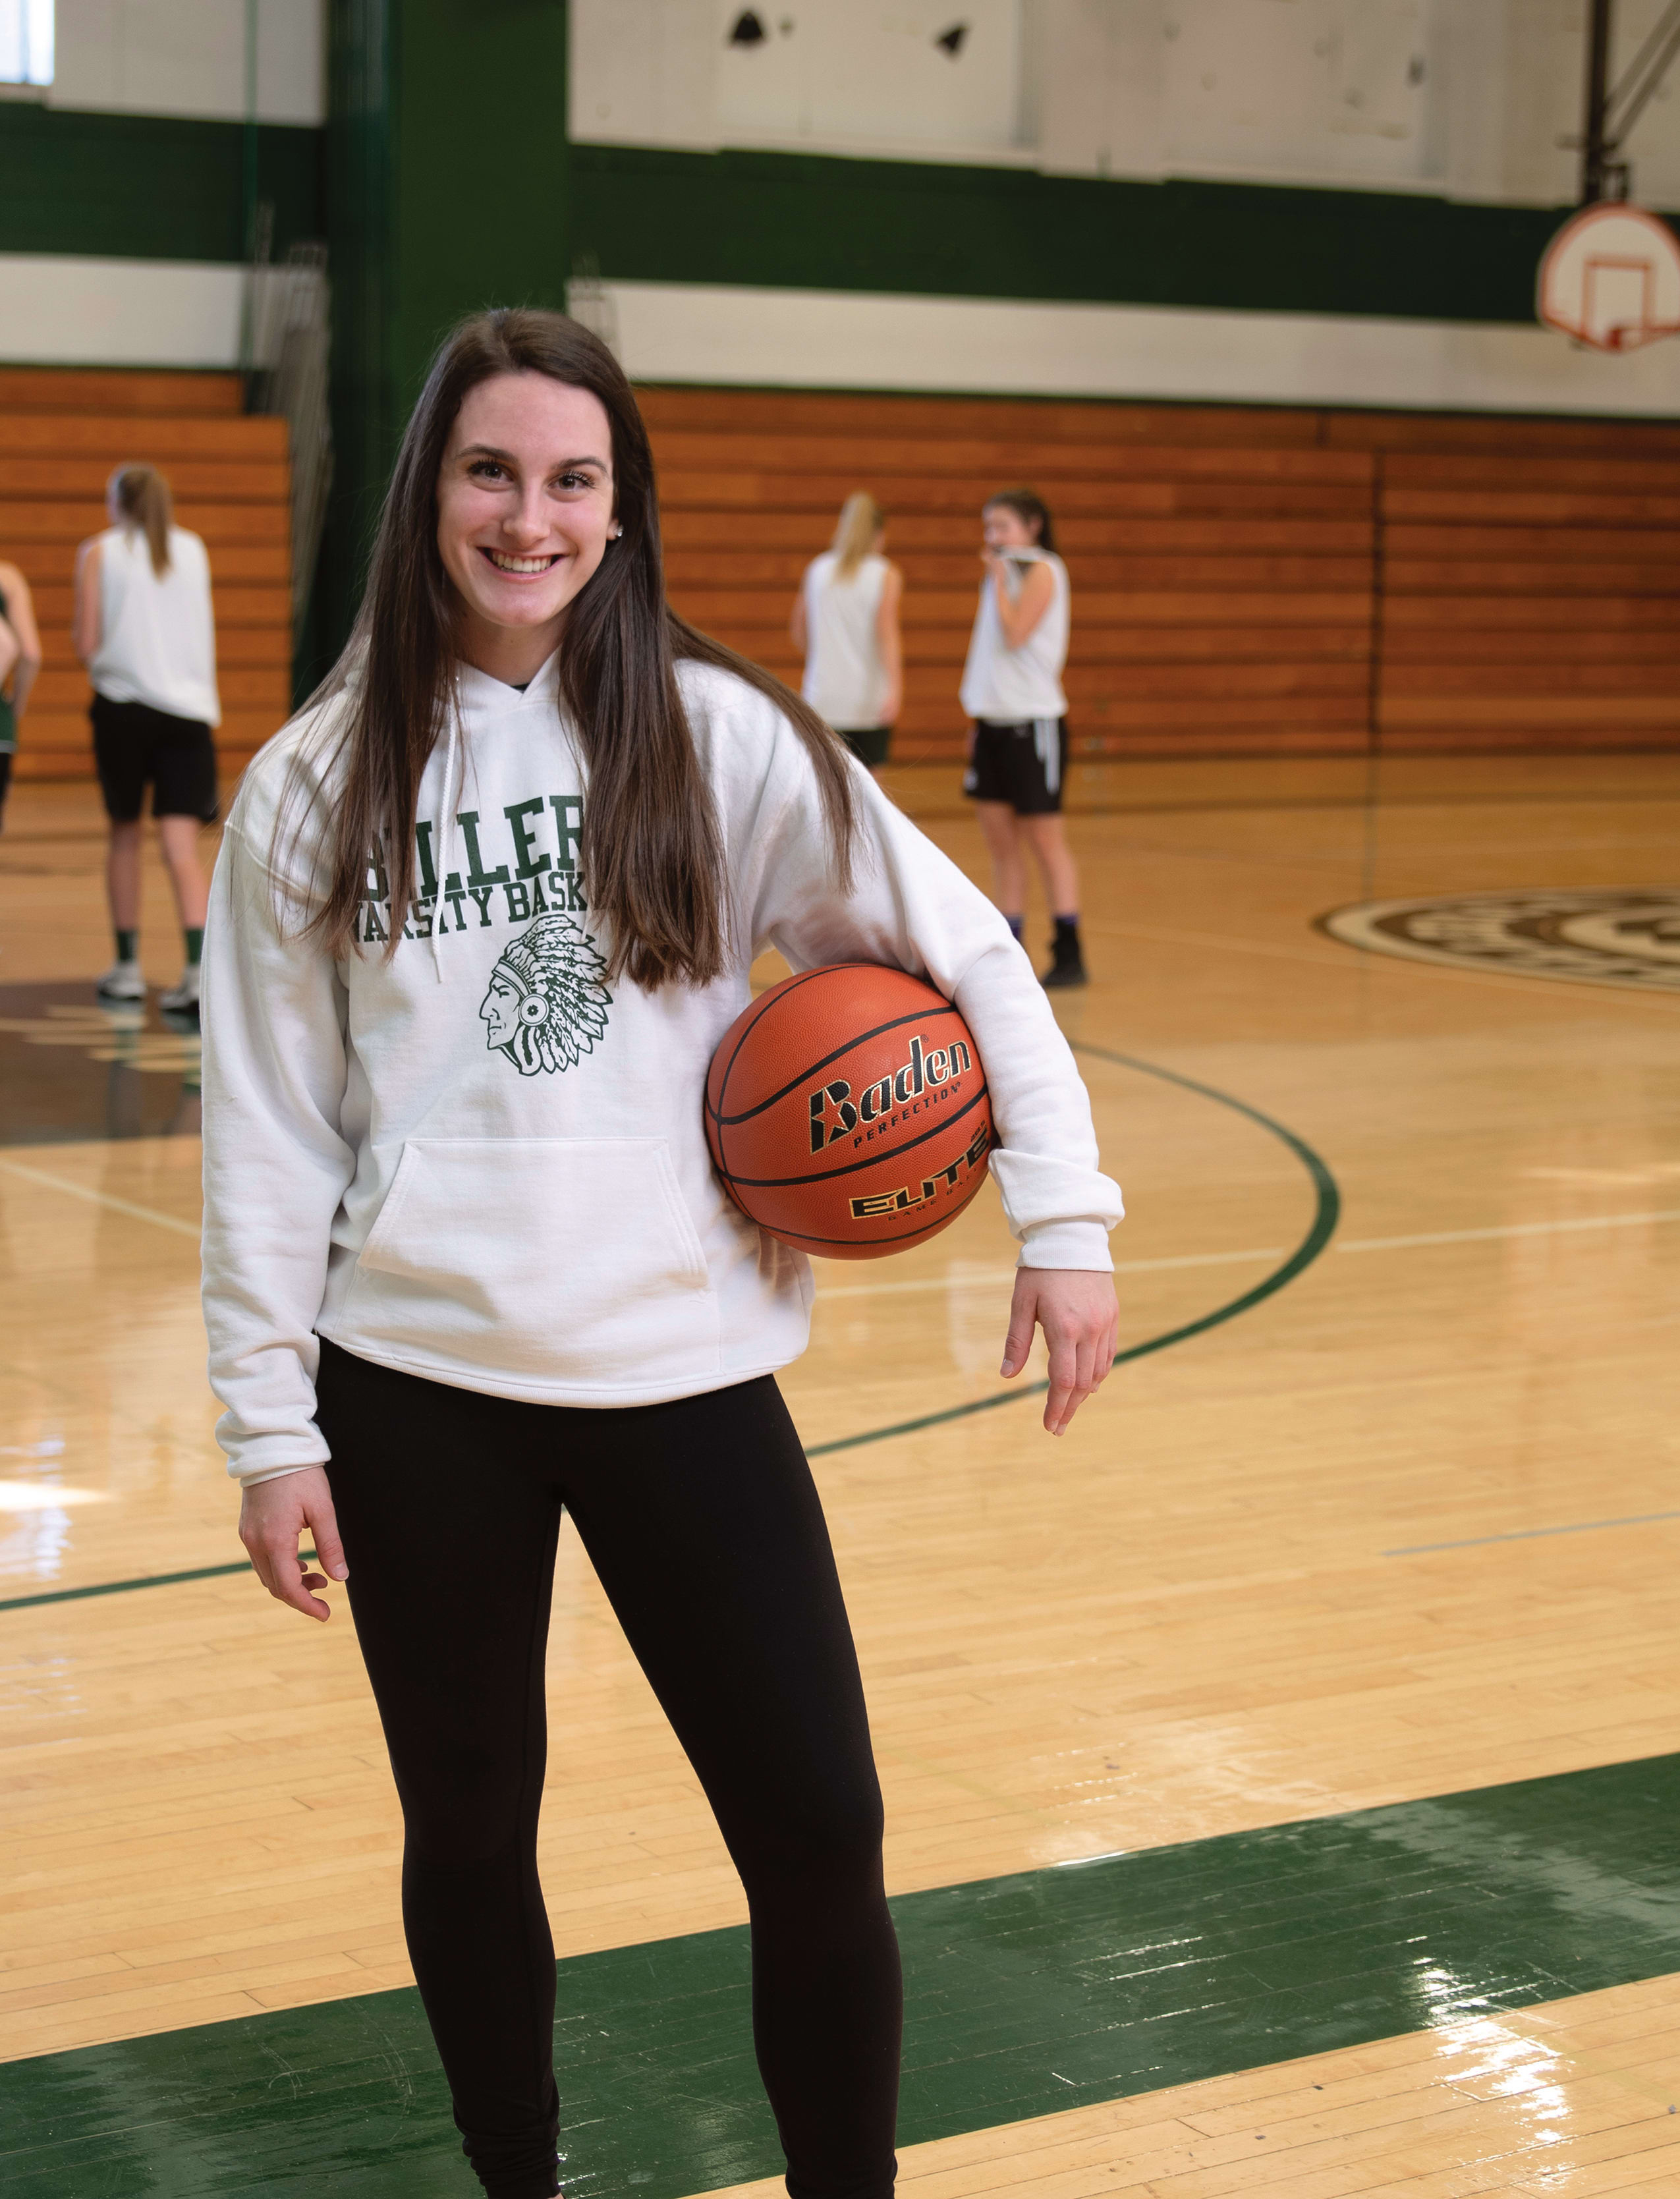 Taylor Gibson from Billerica - Knee Replacement